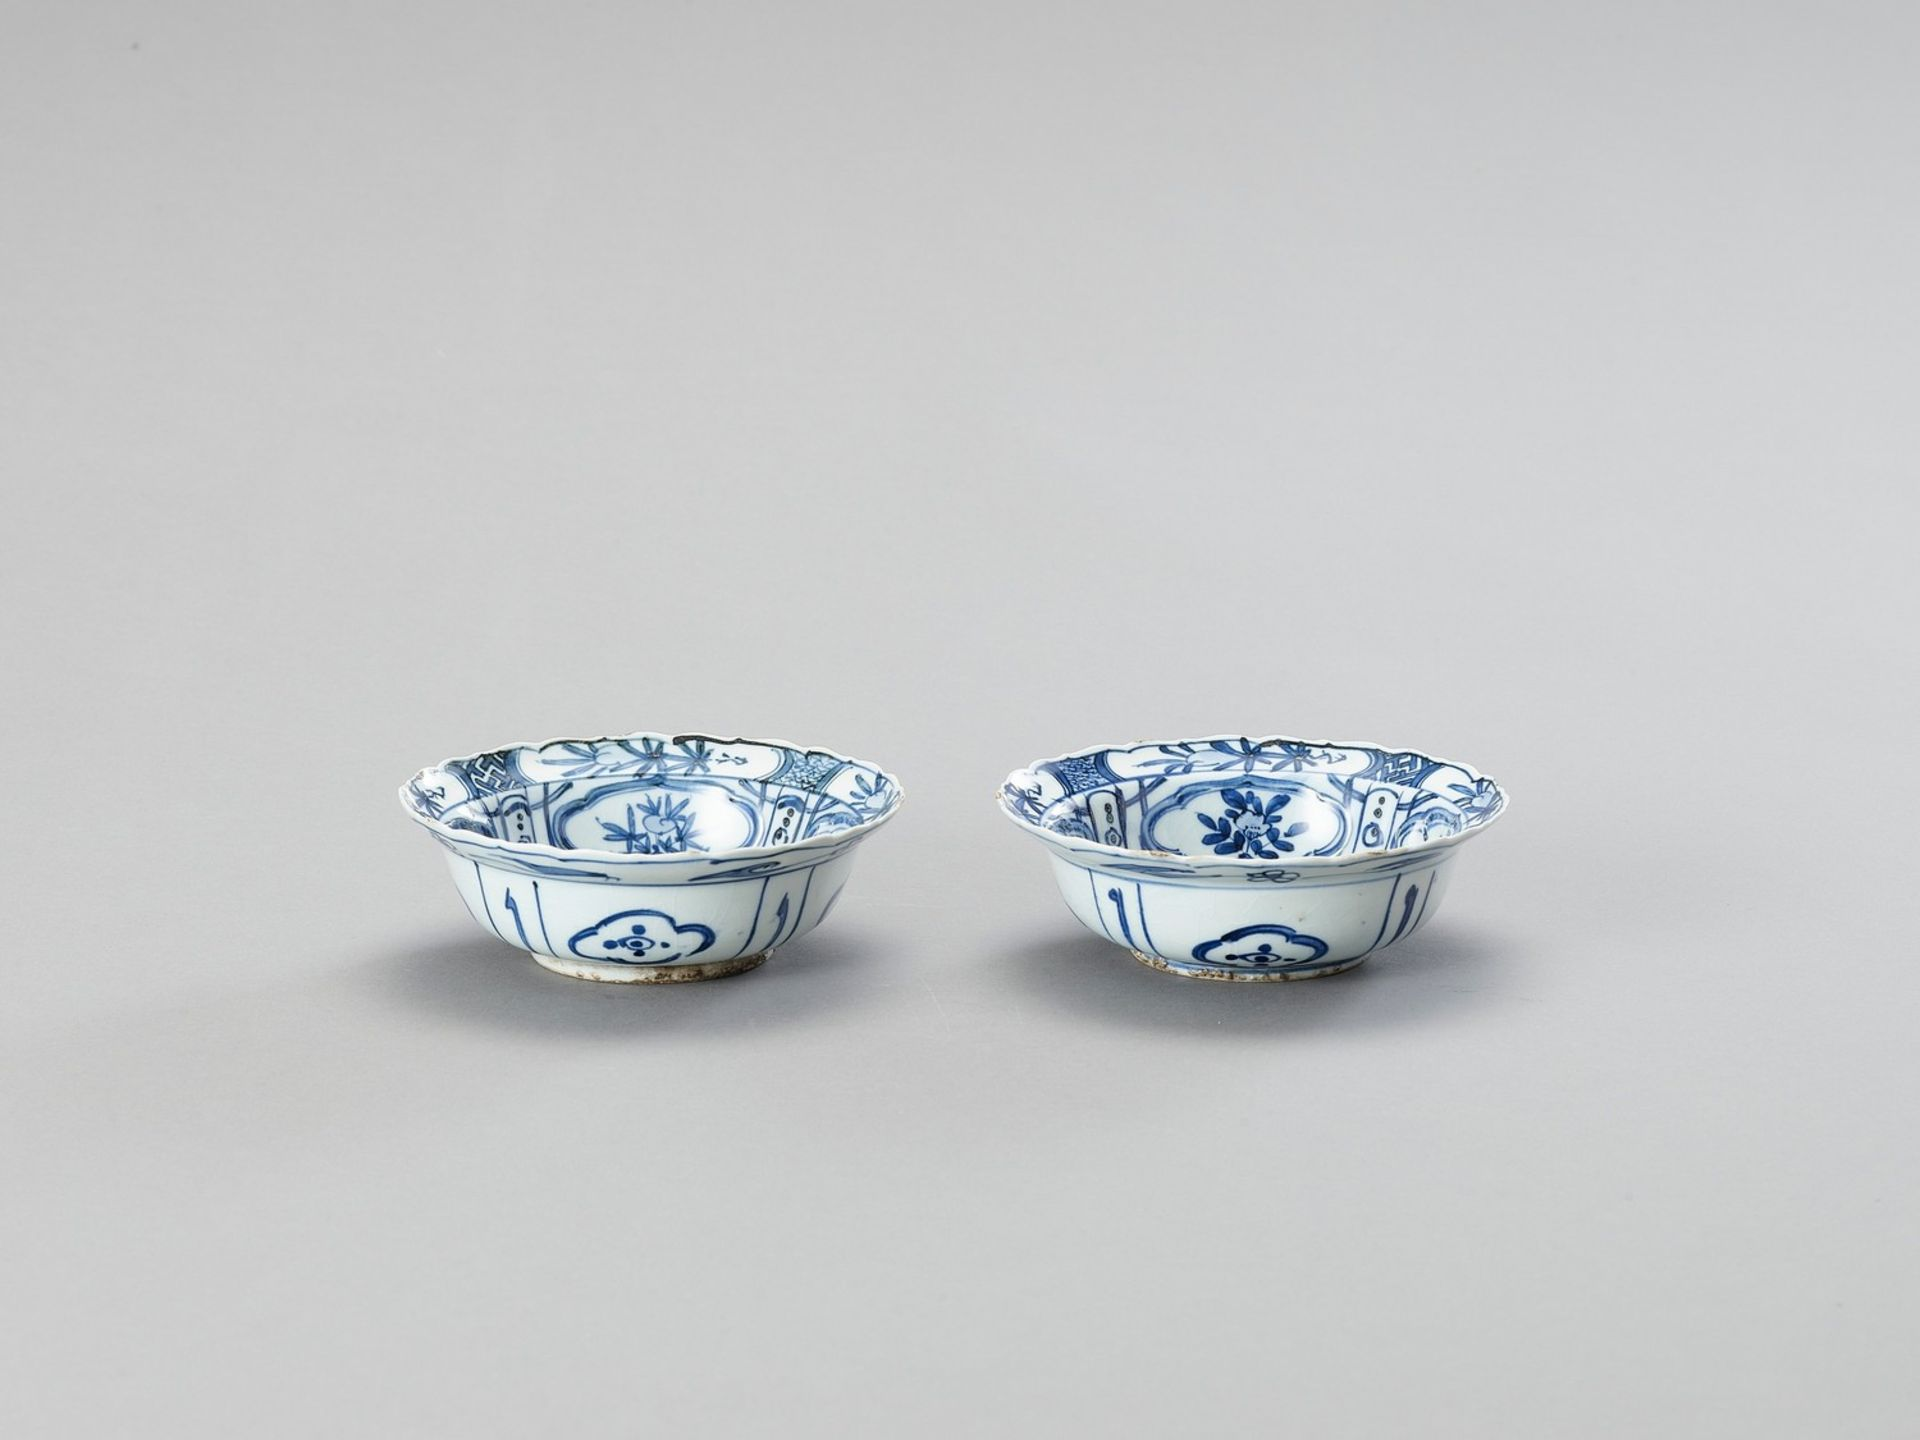 A PAIR OF BLUE AND WHITE 'KRAAK' STYLE PORCELAIN BOWLS - Bild 2 aus 4